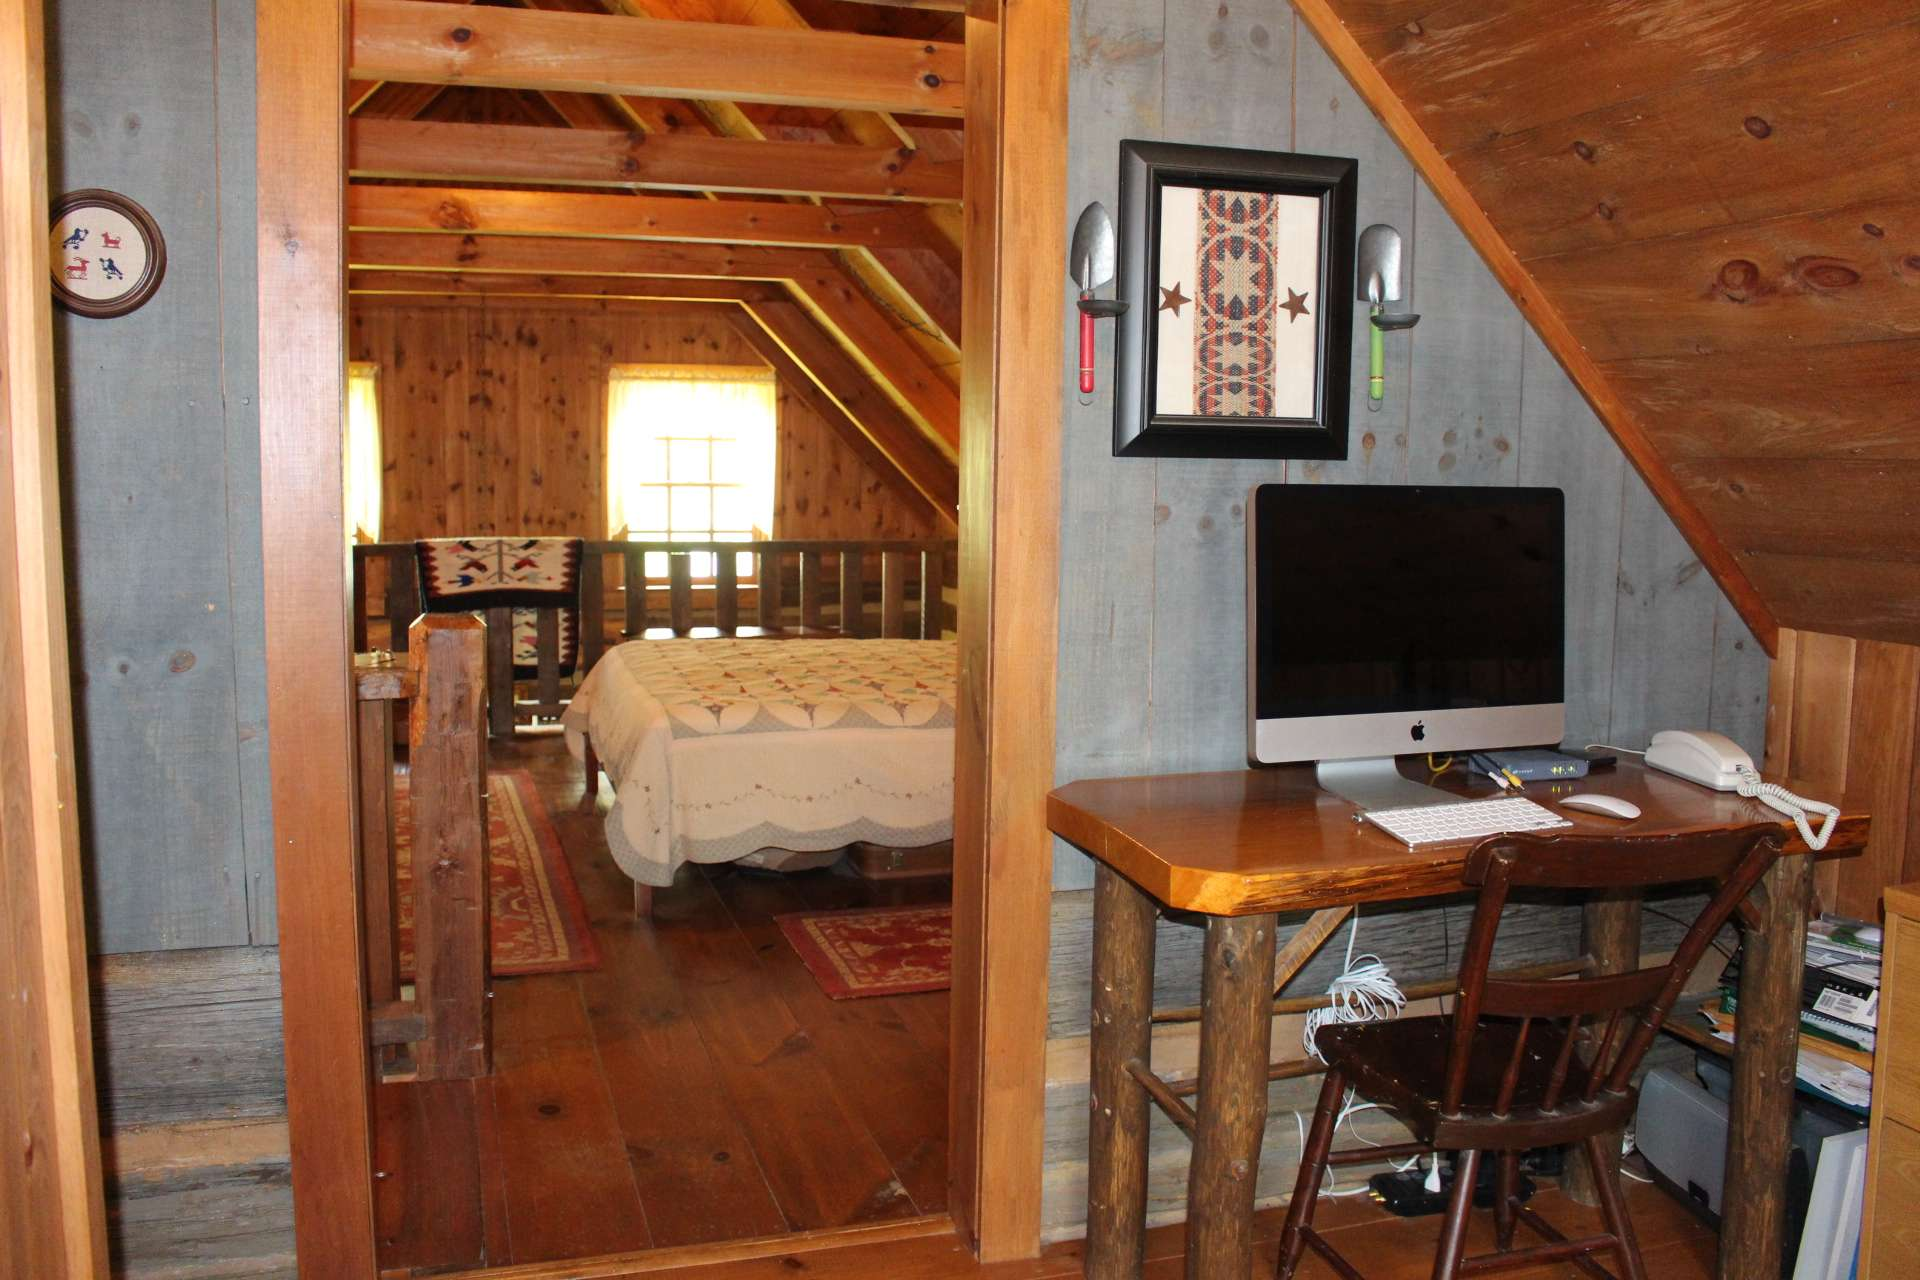 Just off the bedroom/loft is a sitting area/office and a full bath with claw foot tub.